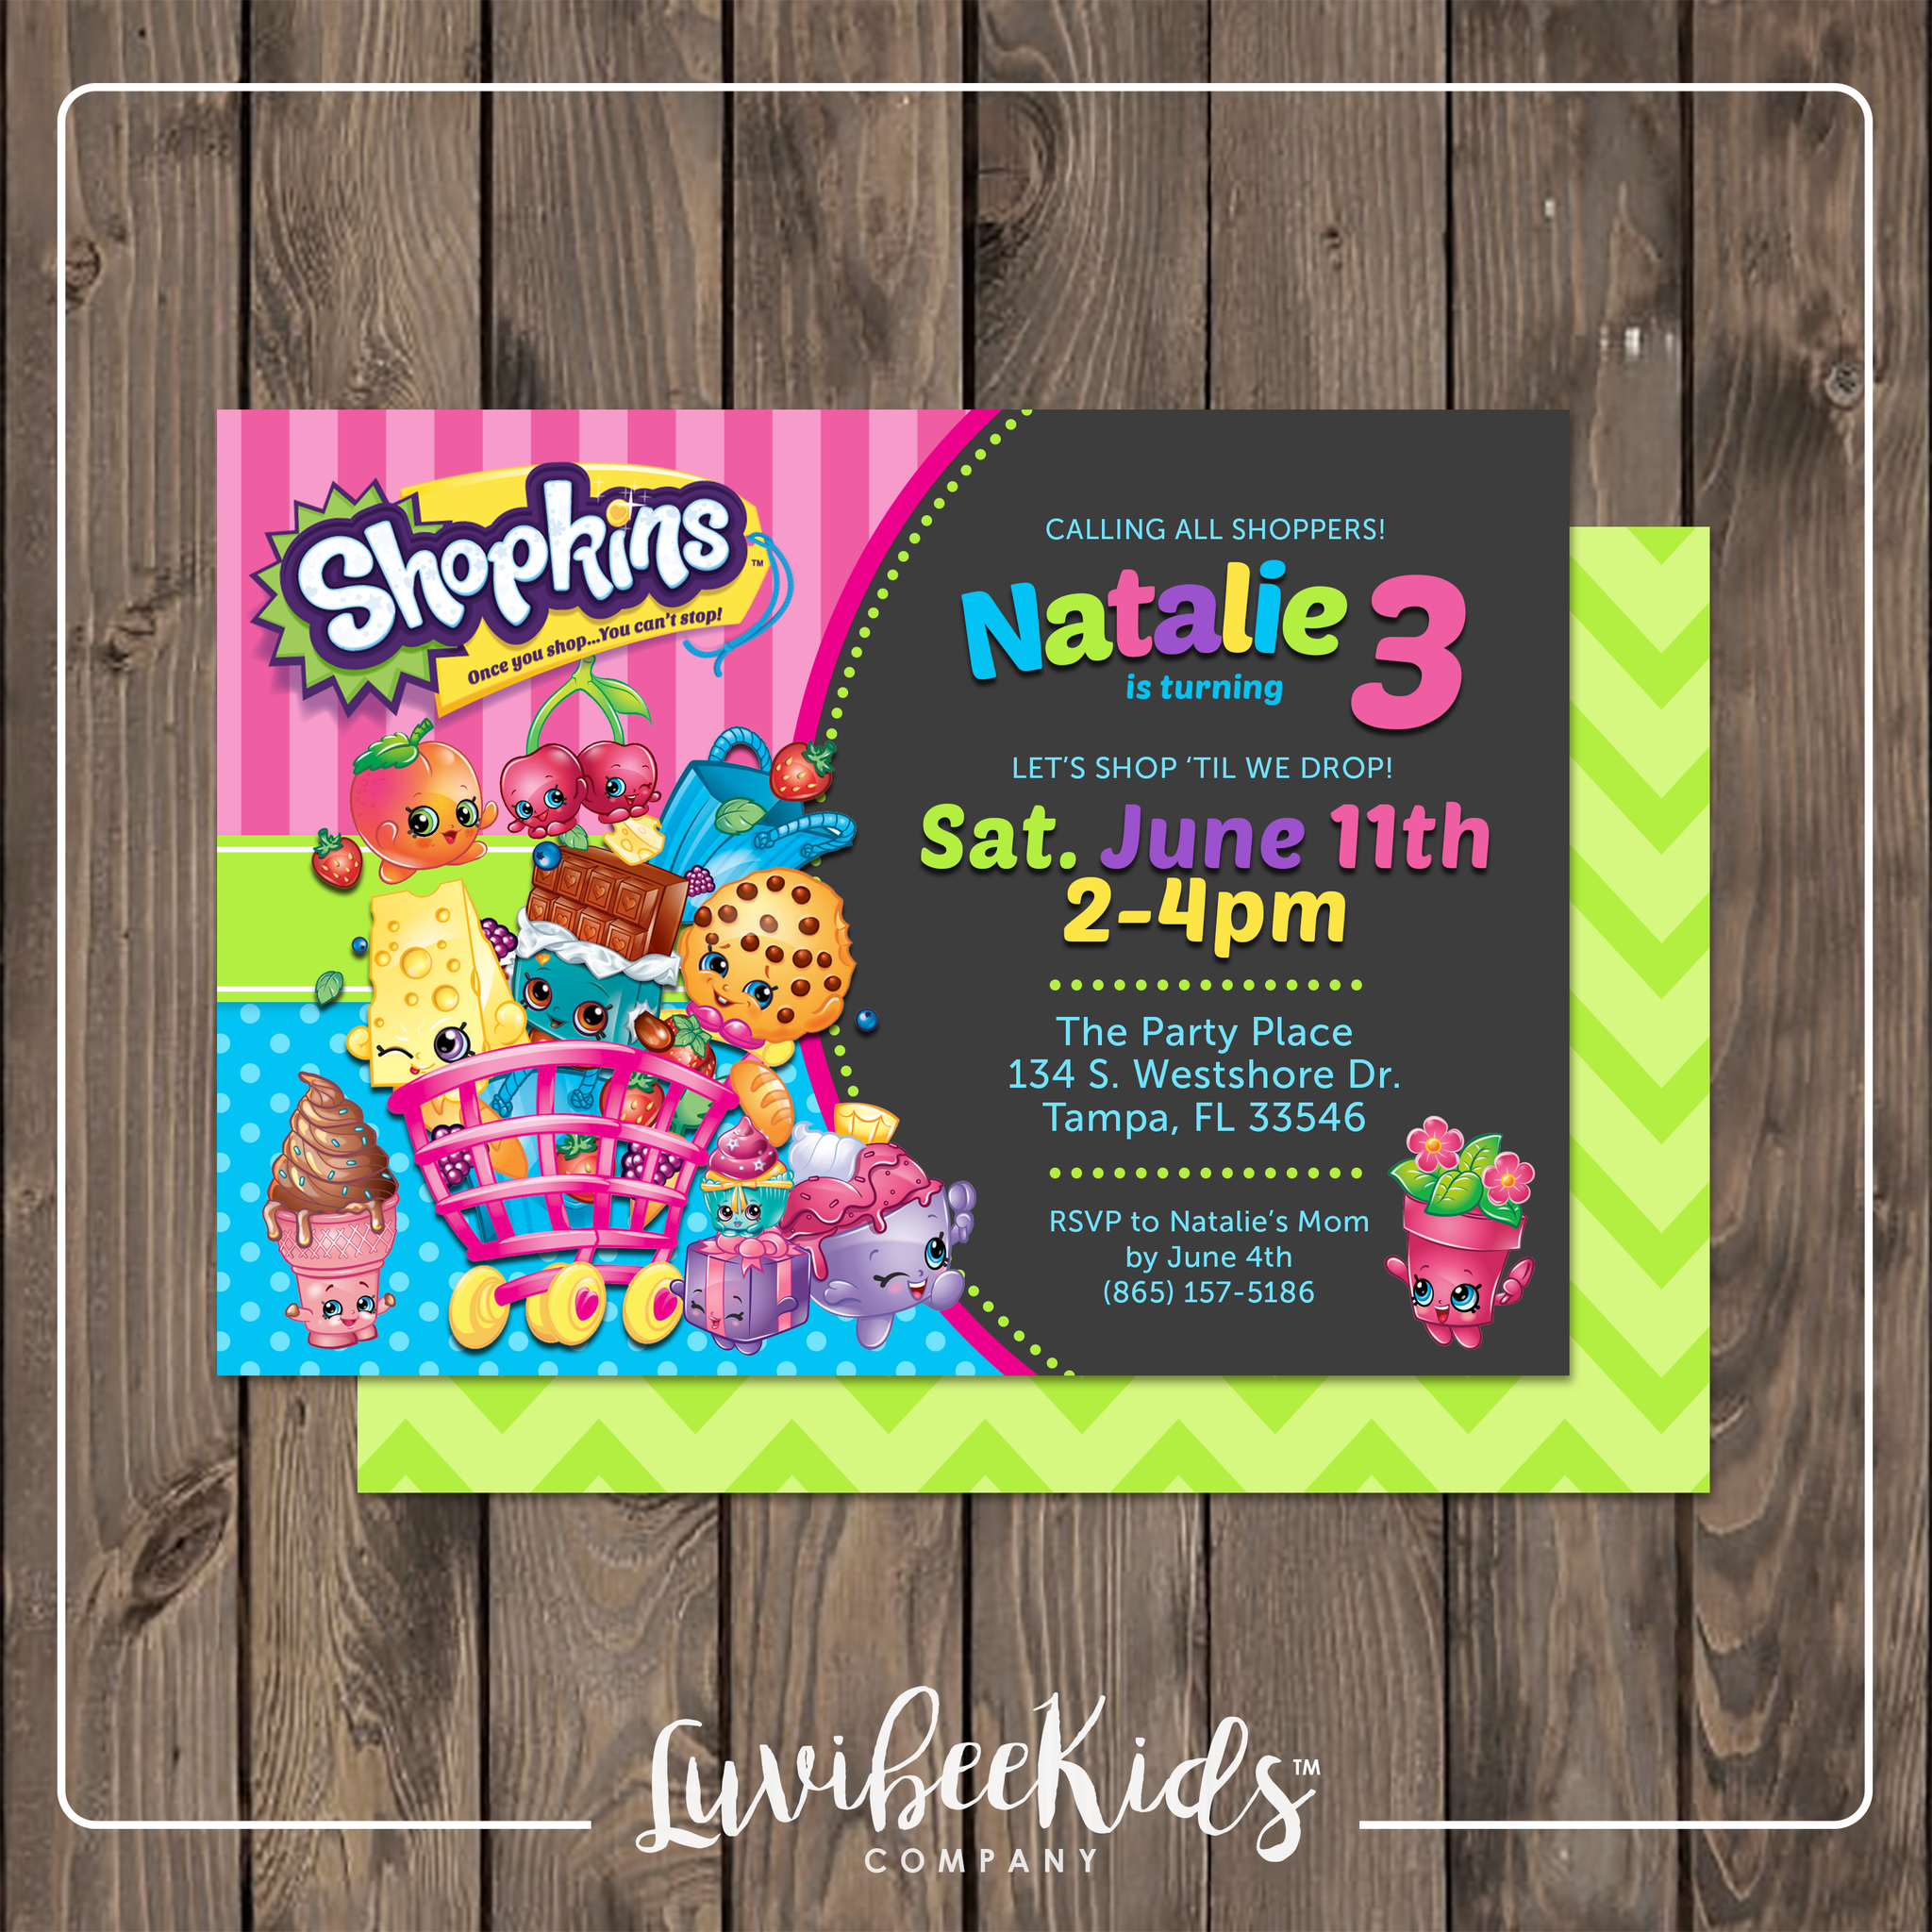 Shopkins Invitation | Printable Birthday Invitation - LuvibeeKidsCo